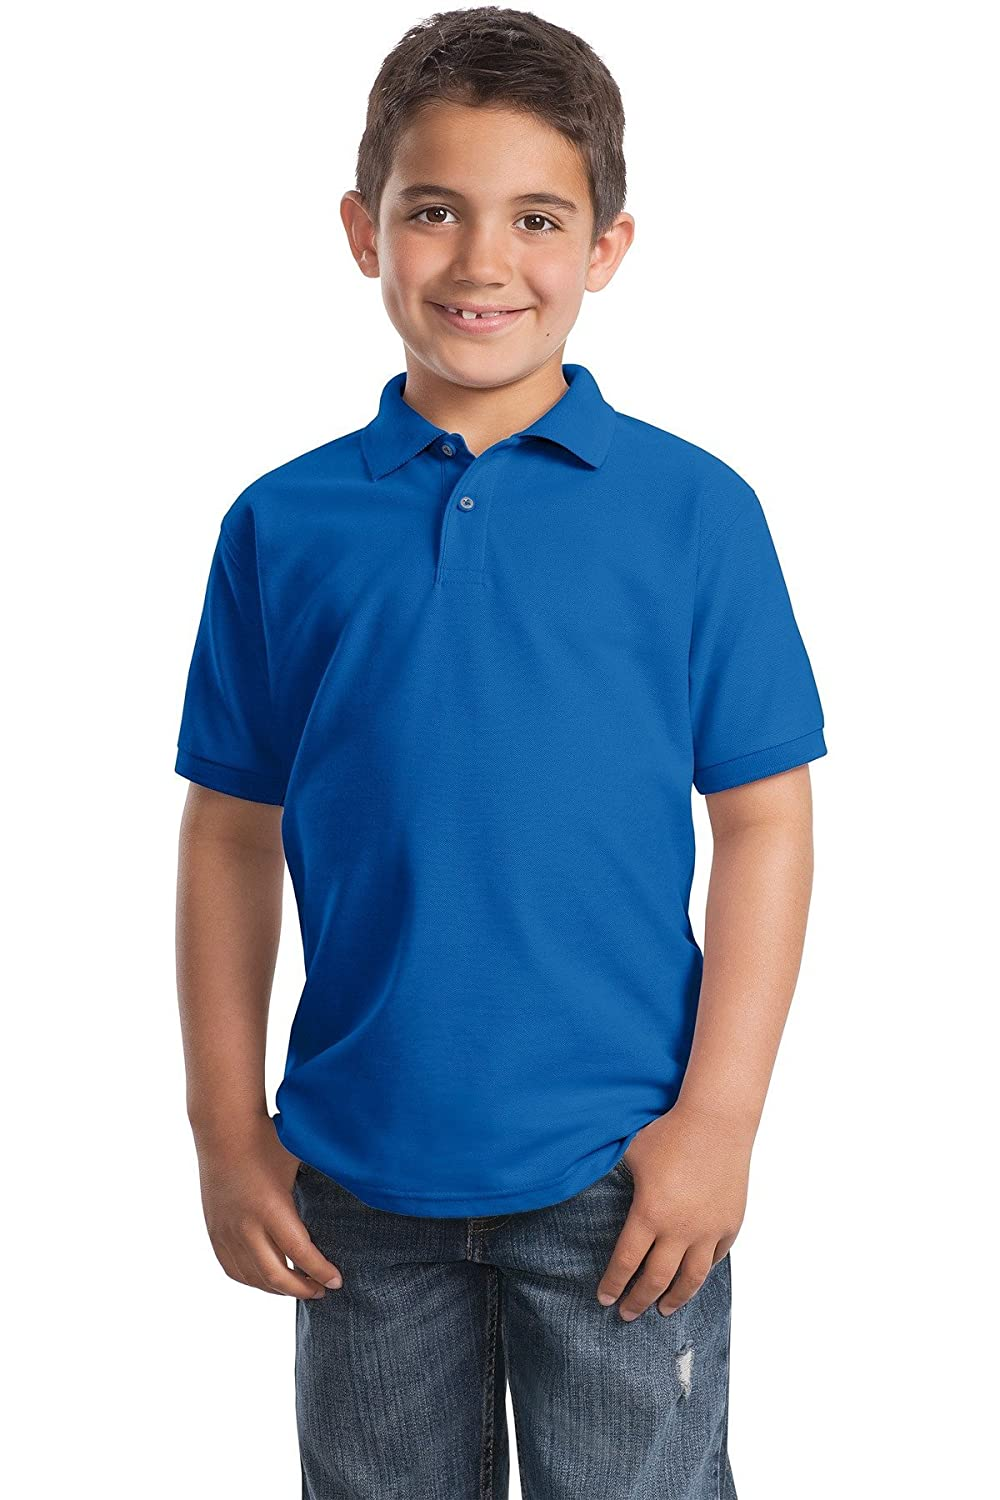 Port Authority Youth Silk Touch Polo Y500 Royal XL